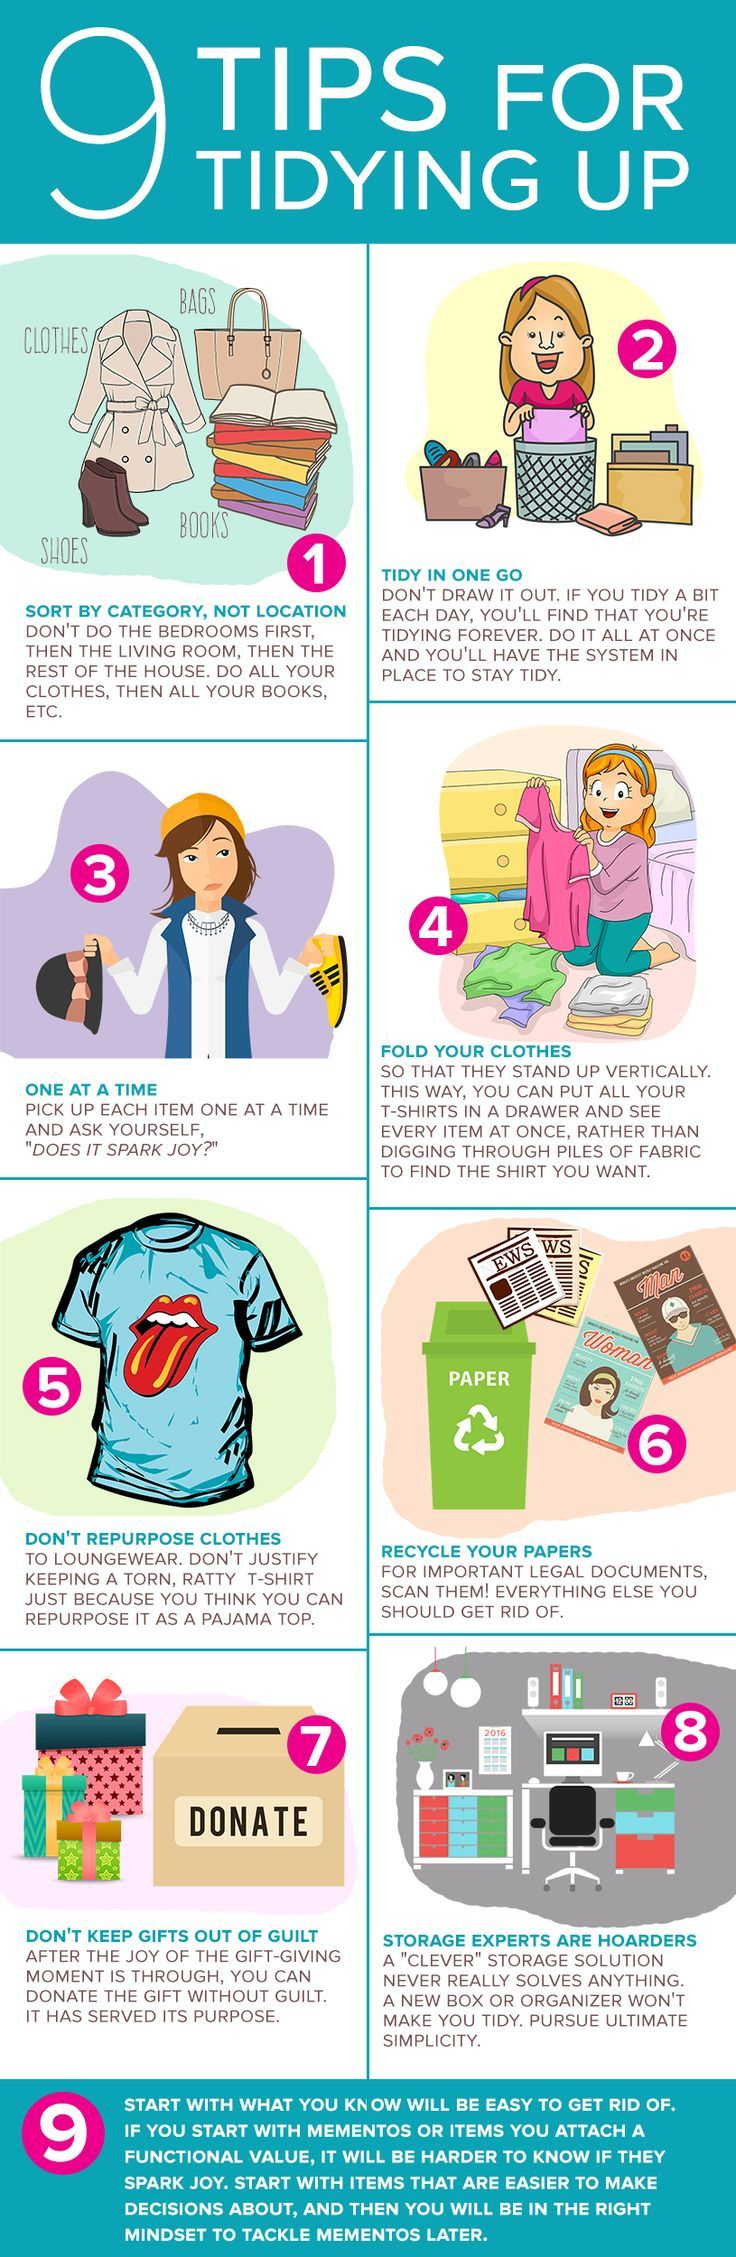 """Marie Kondo's tips in her book """"The Life-changing Magic of Tidying up"""" are said to really help people not only get organized, but stay that way. Here's how it works."""